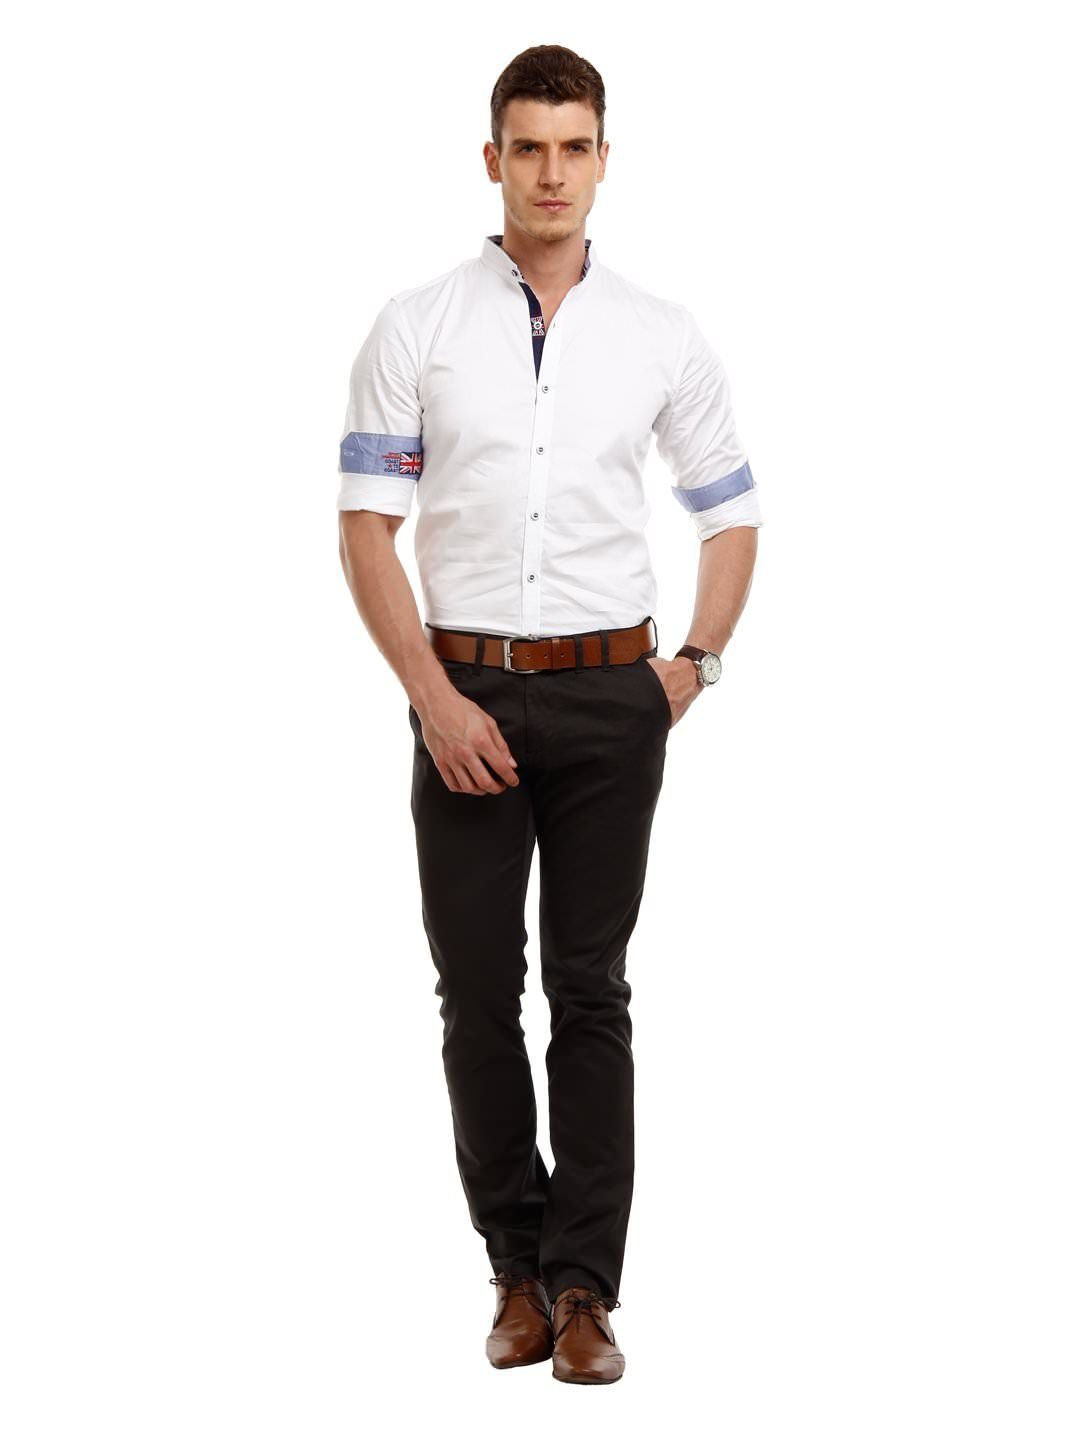 men's smartcasual summer wear great complete outfit